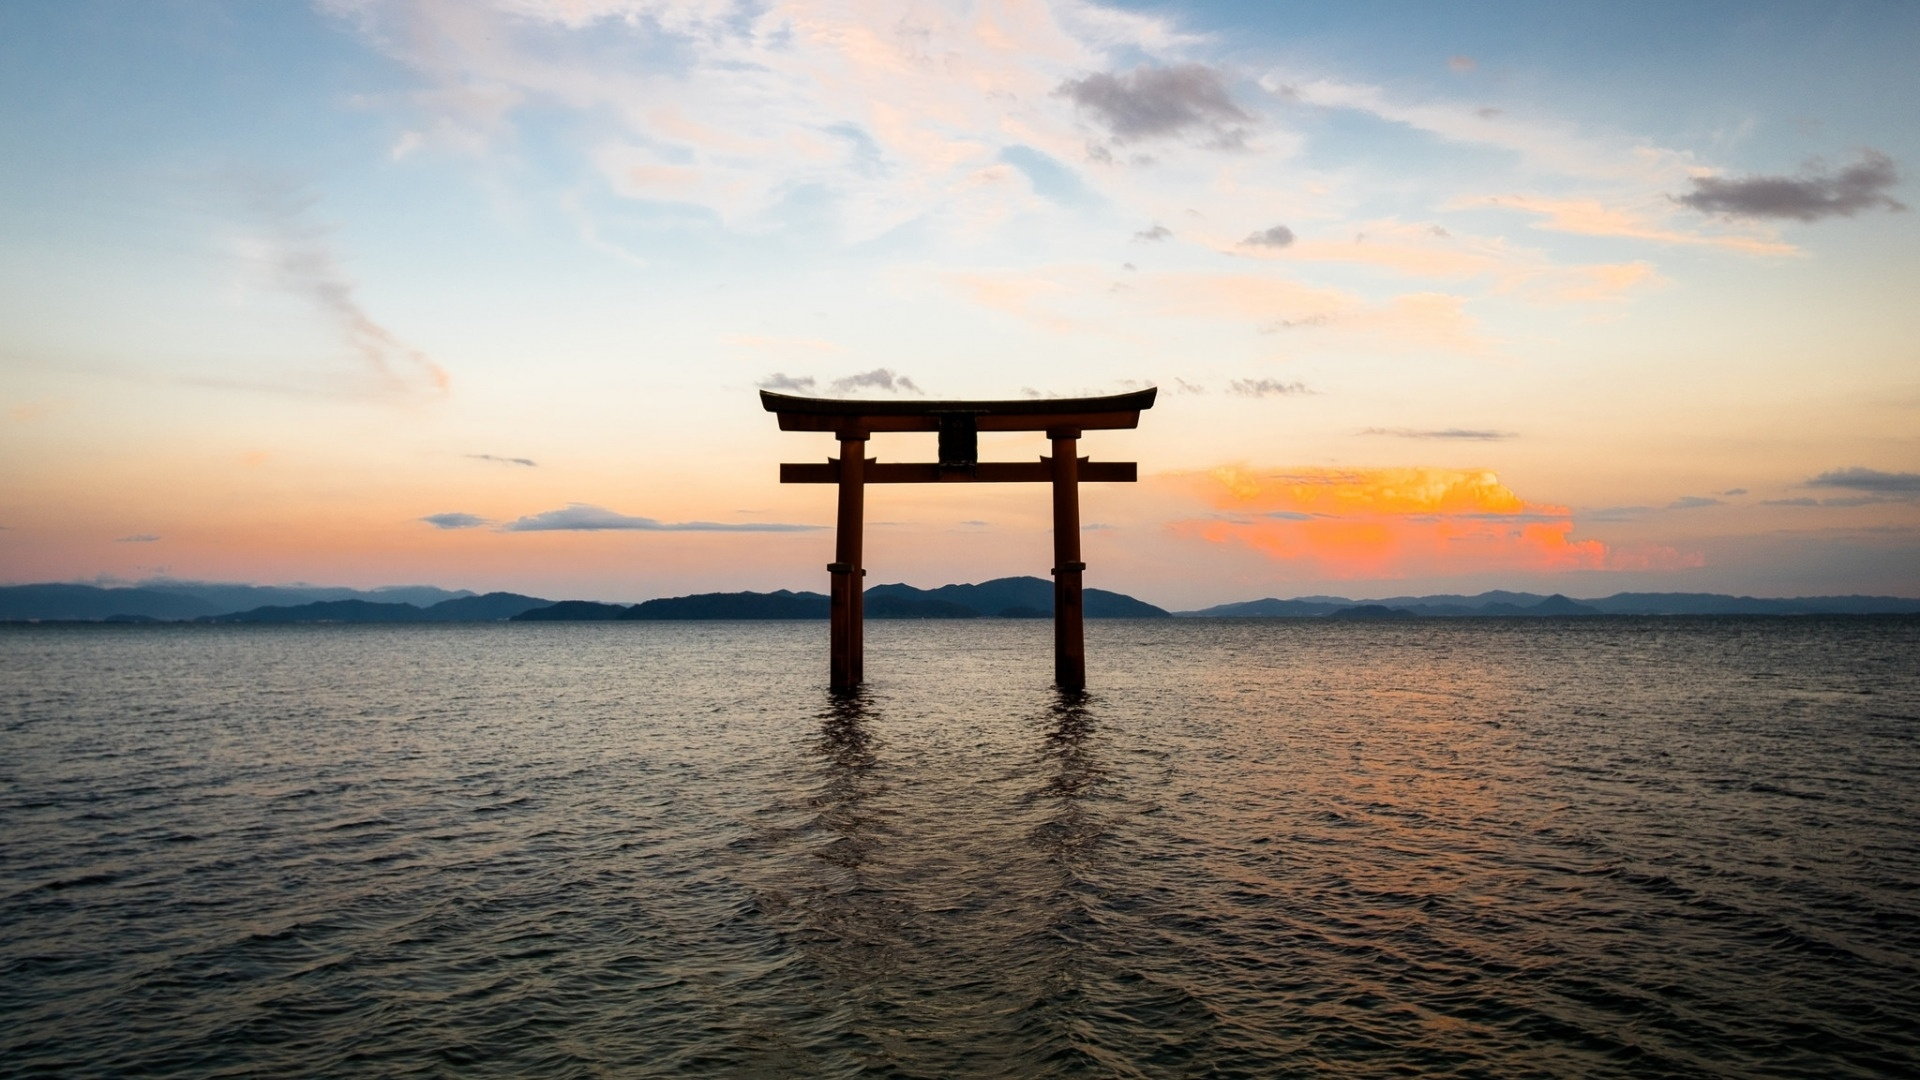 Torii Gate wallpaper for pc